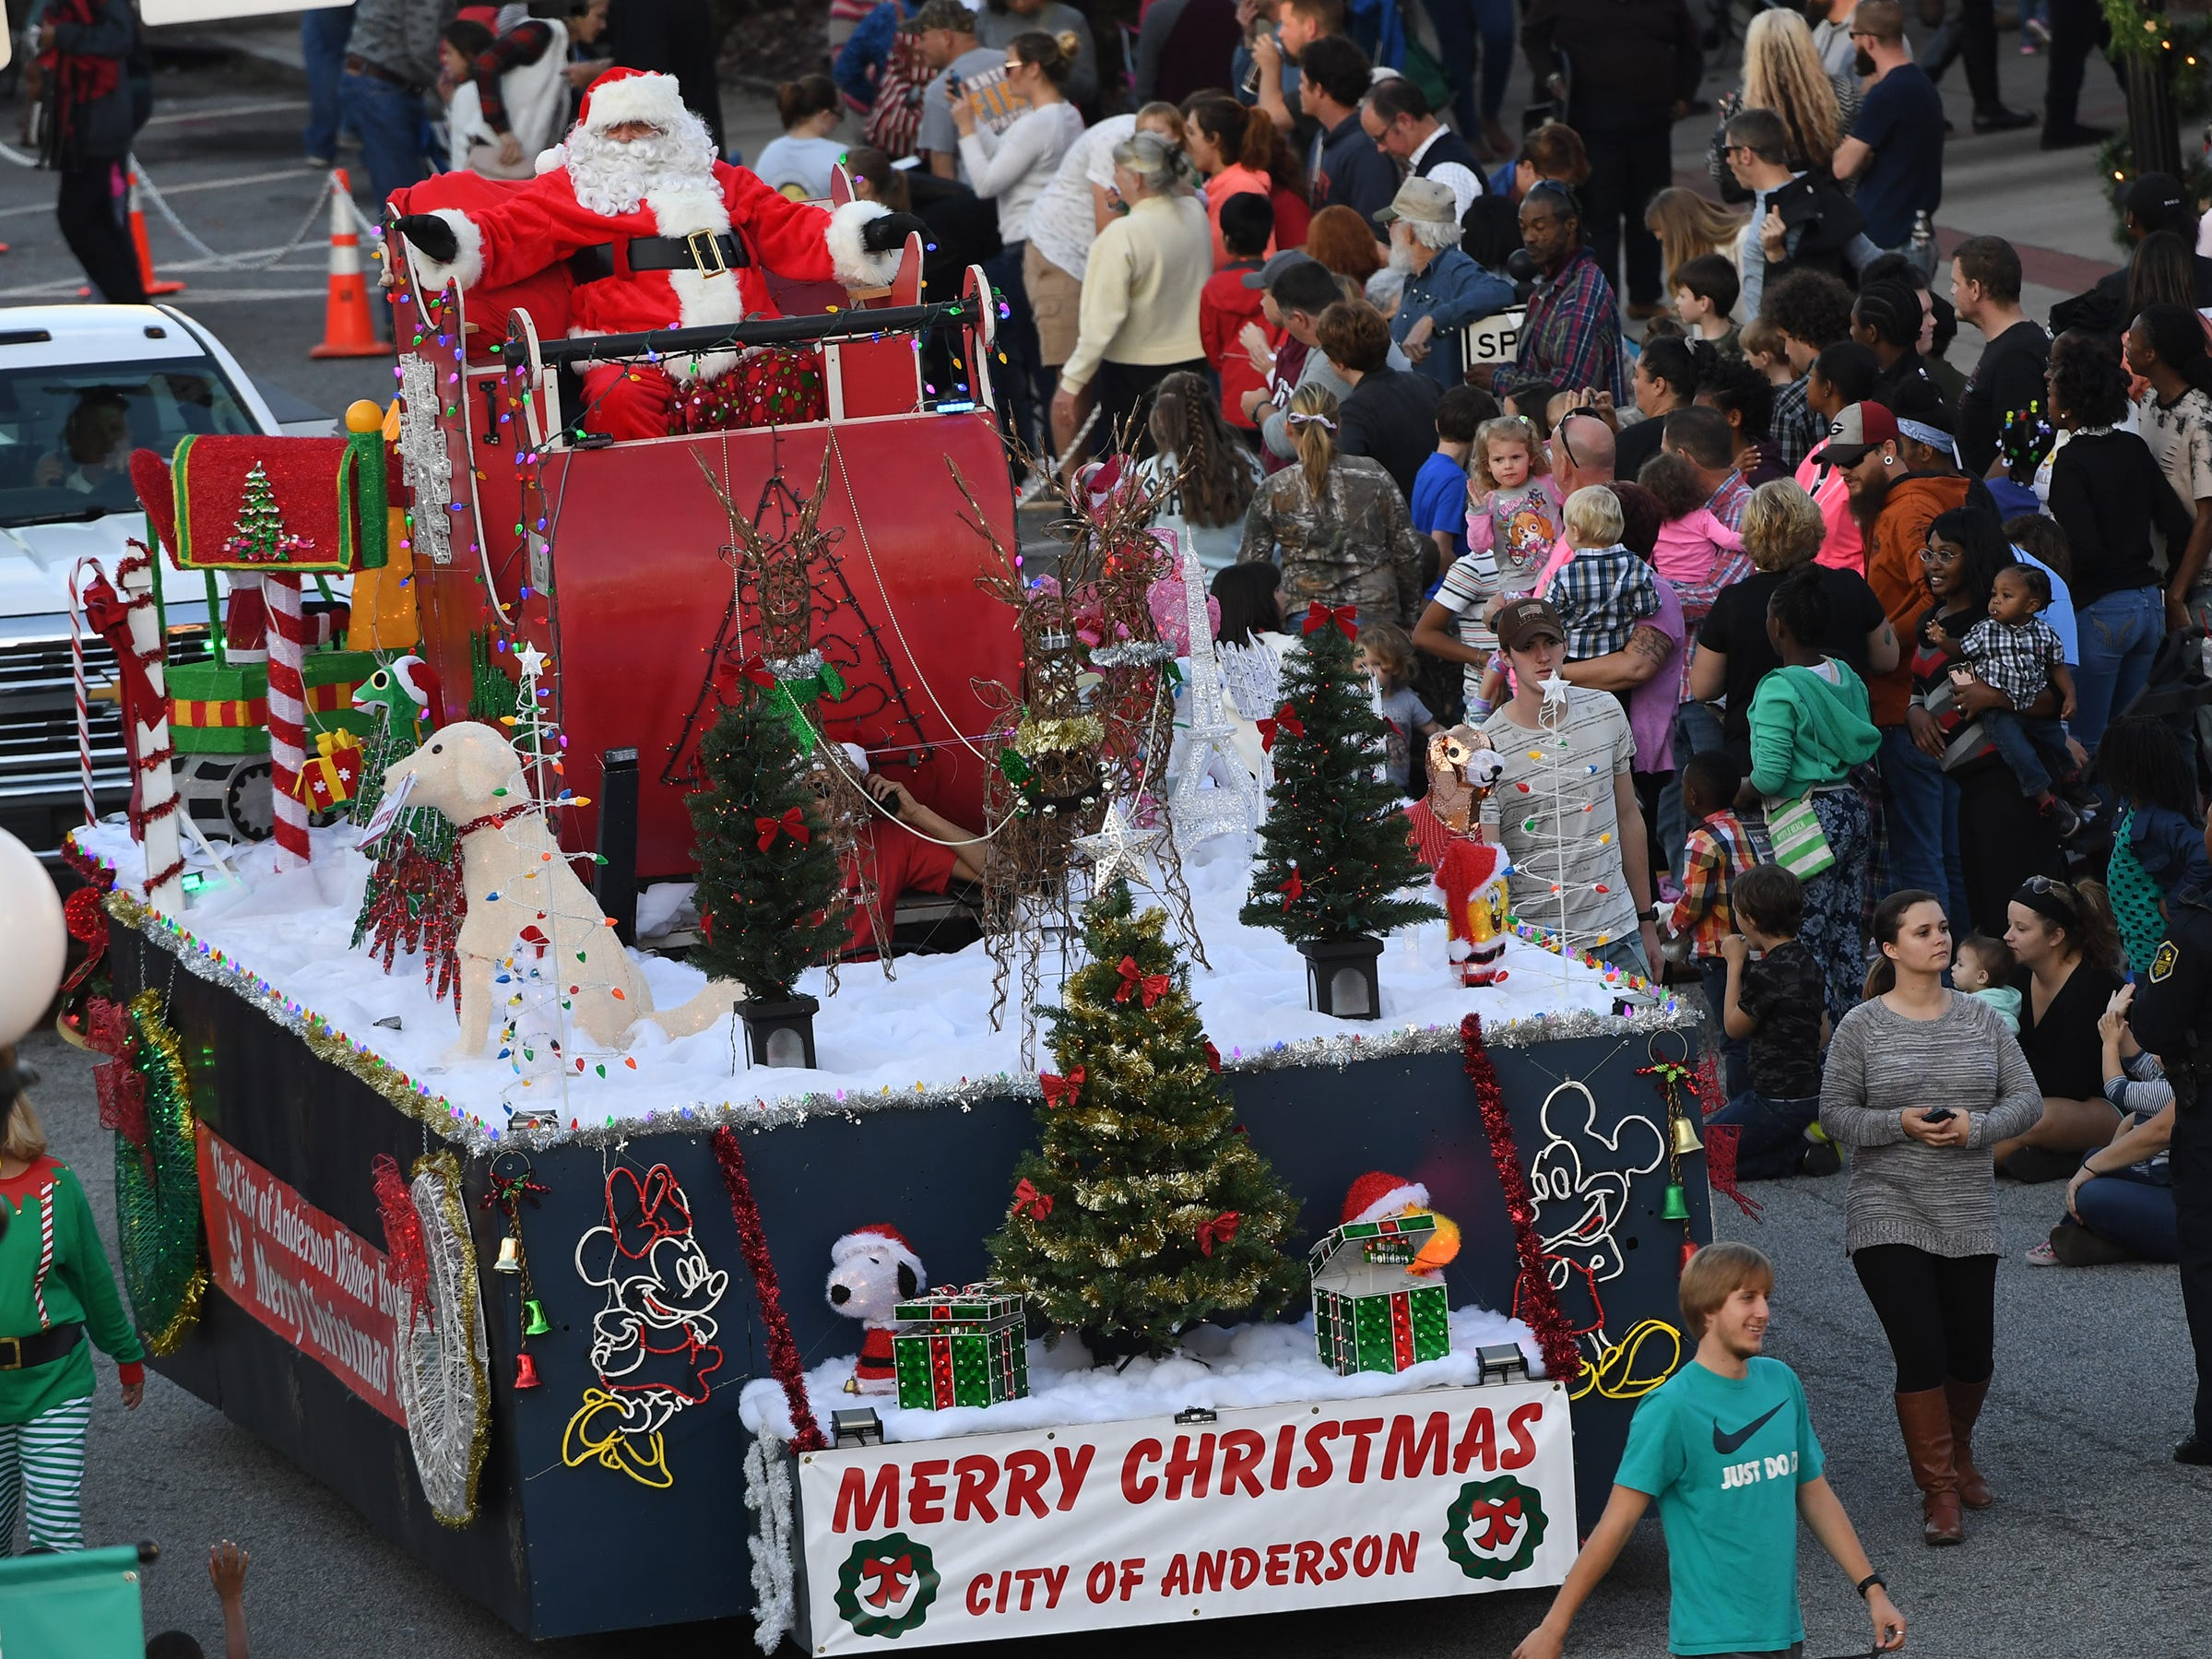 Santa Claus at  The City of Anderson Christmas Parade on Main Street in Anderson on Sunday, December 3, 2017.